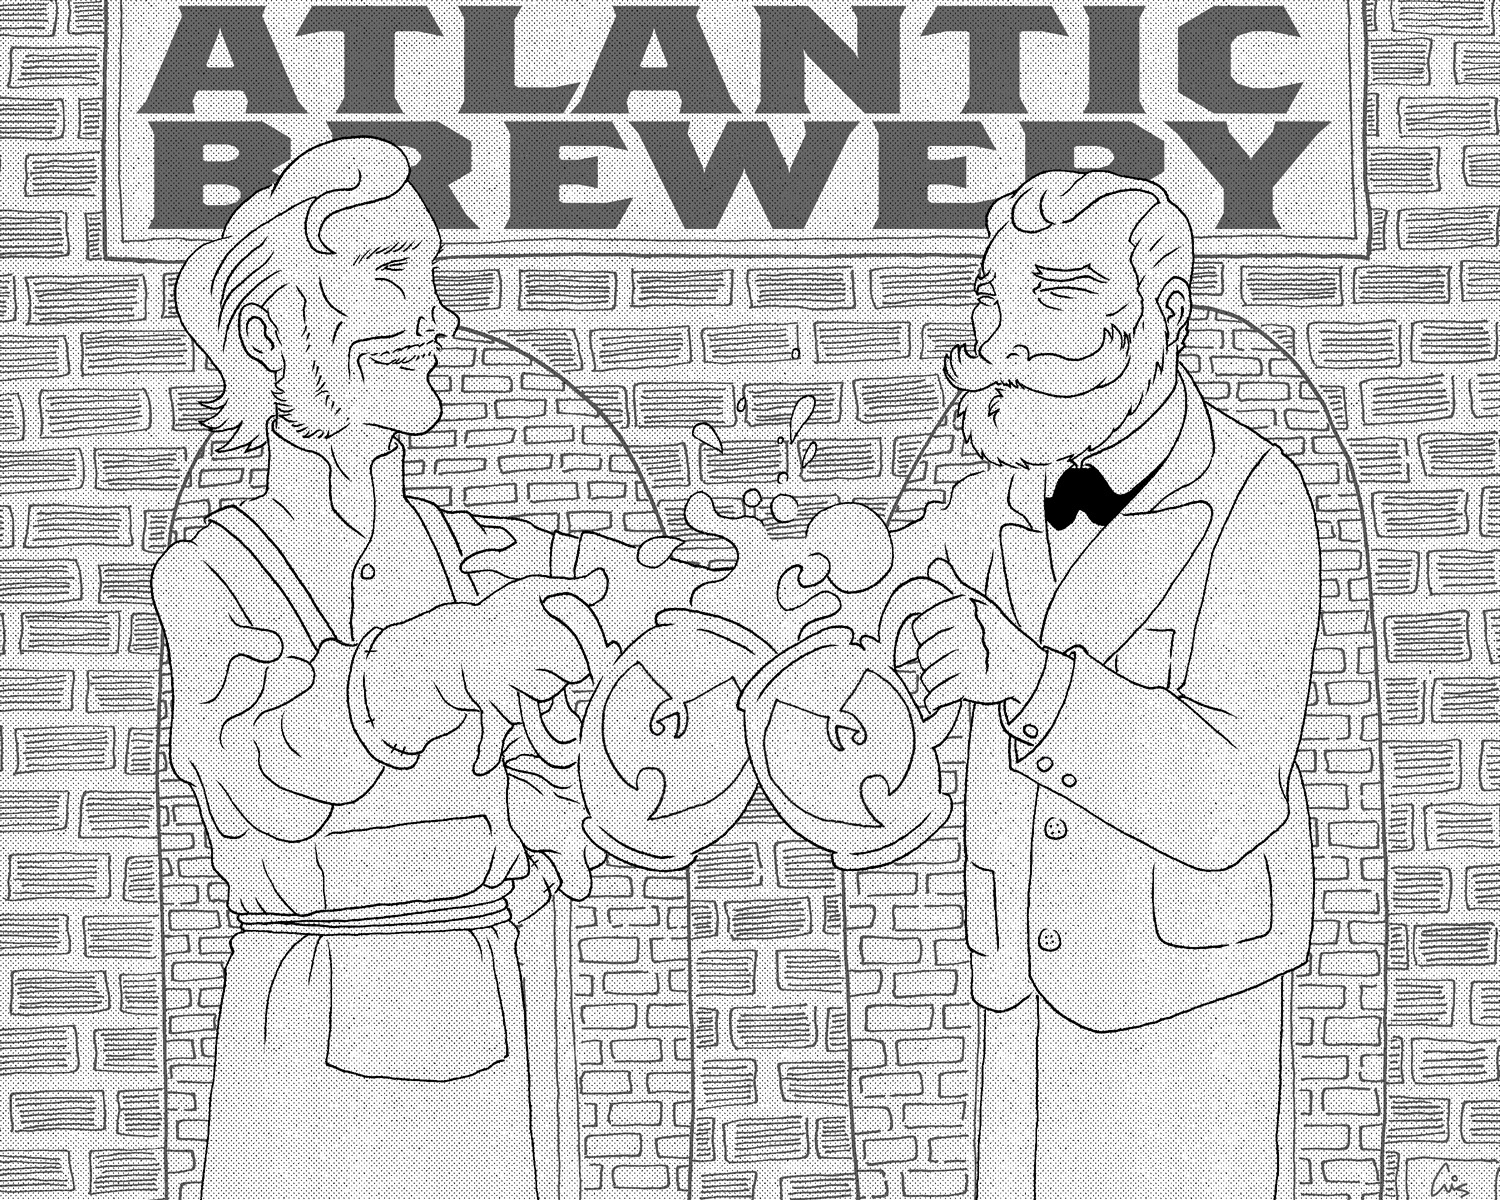 Rubsam & Horrmann's Atlantic Brewery